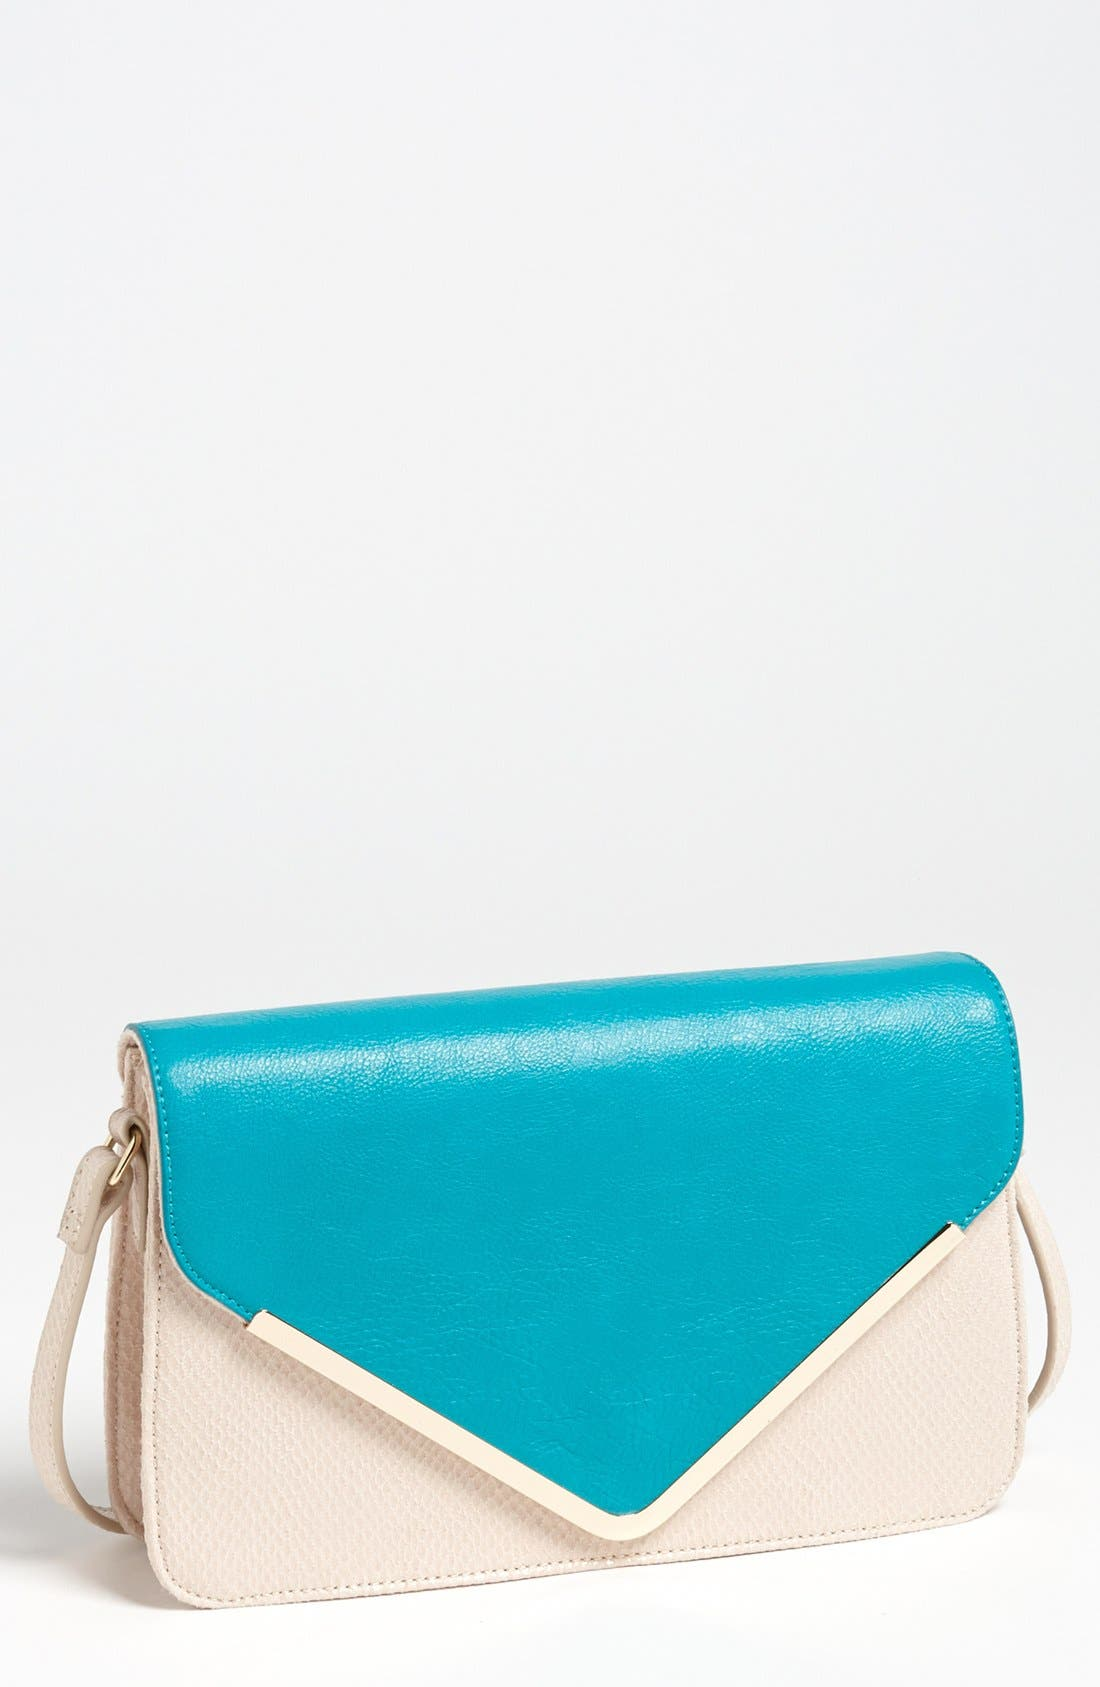 Main Image - Izzy & Ali 'Giselle' Faux Leather Shoulder Bag